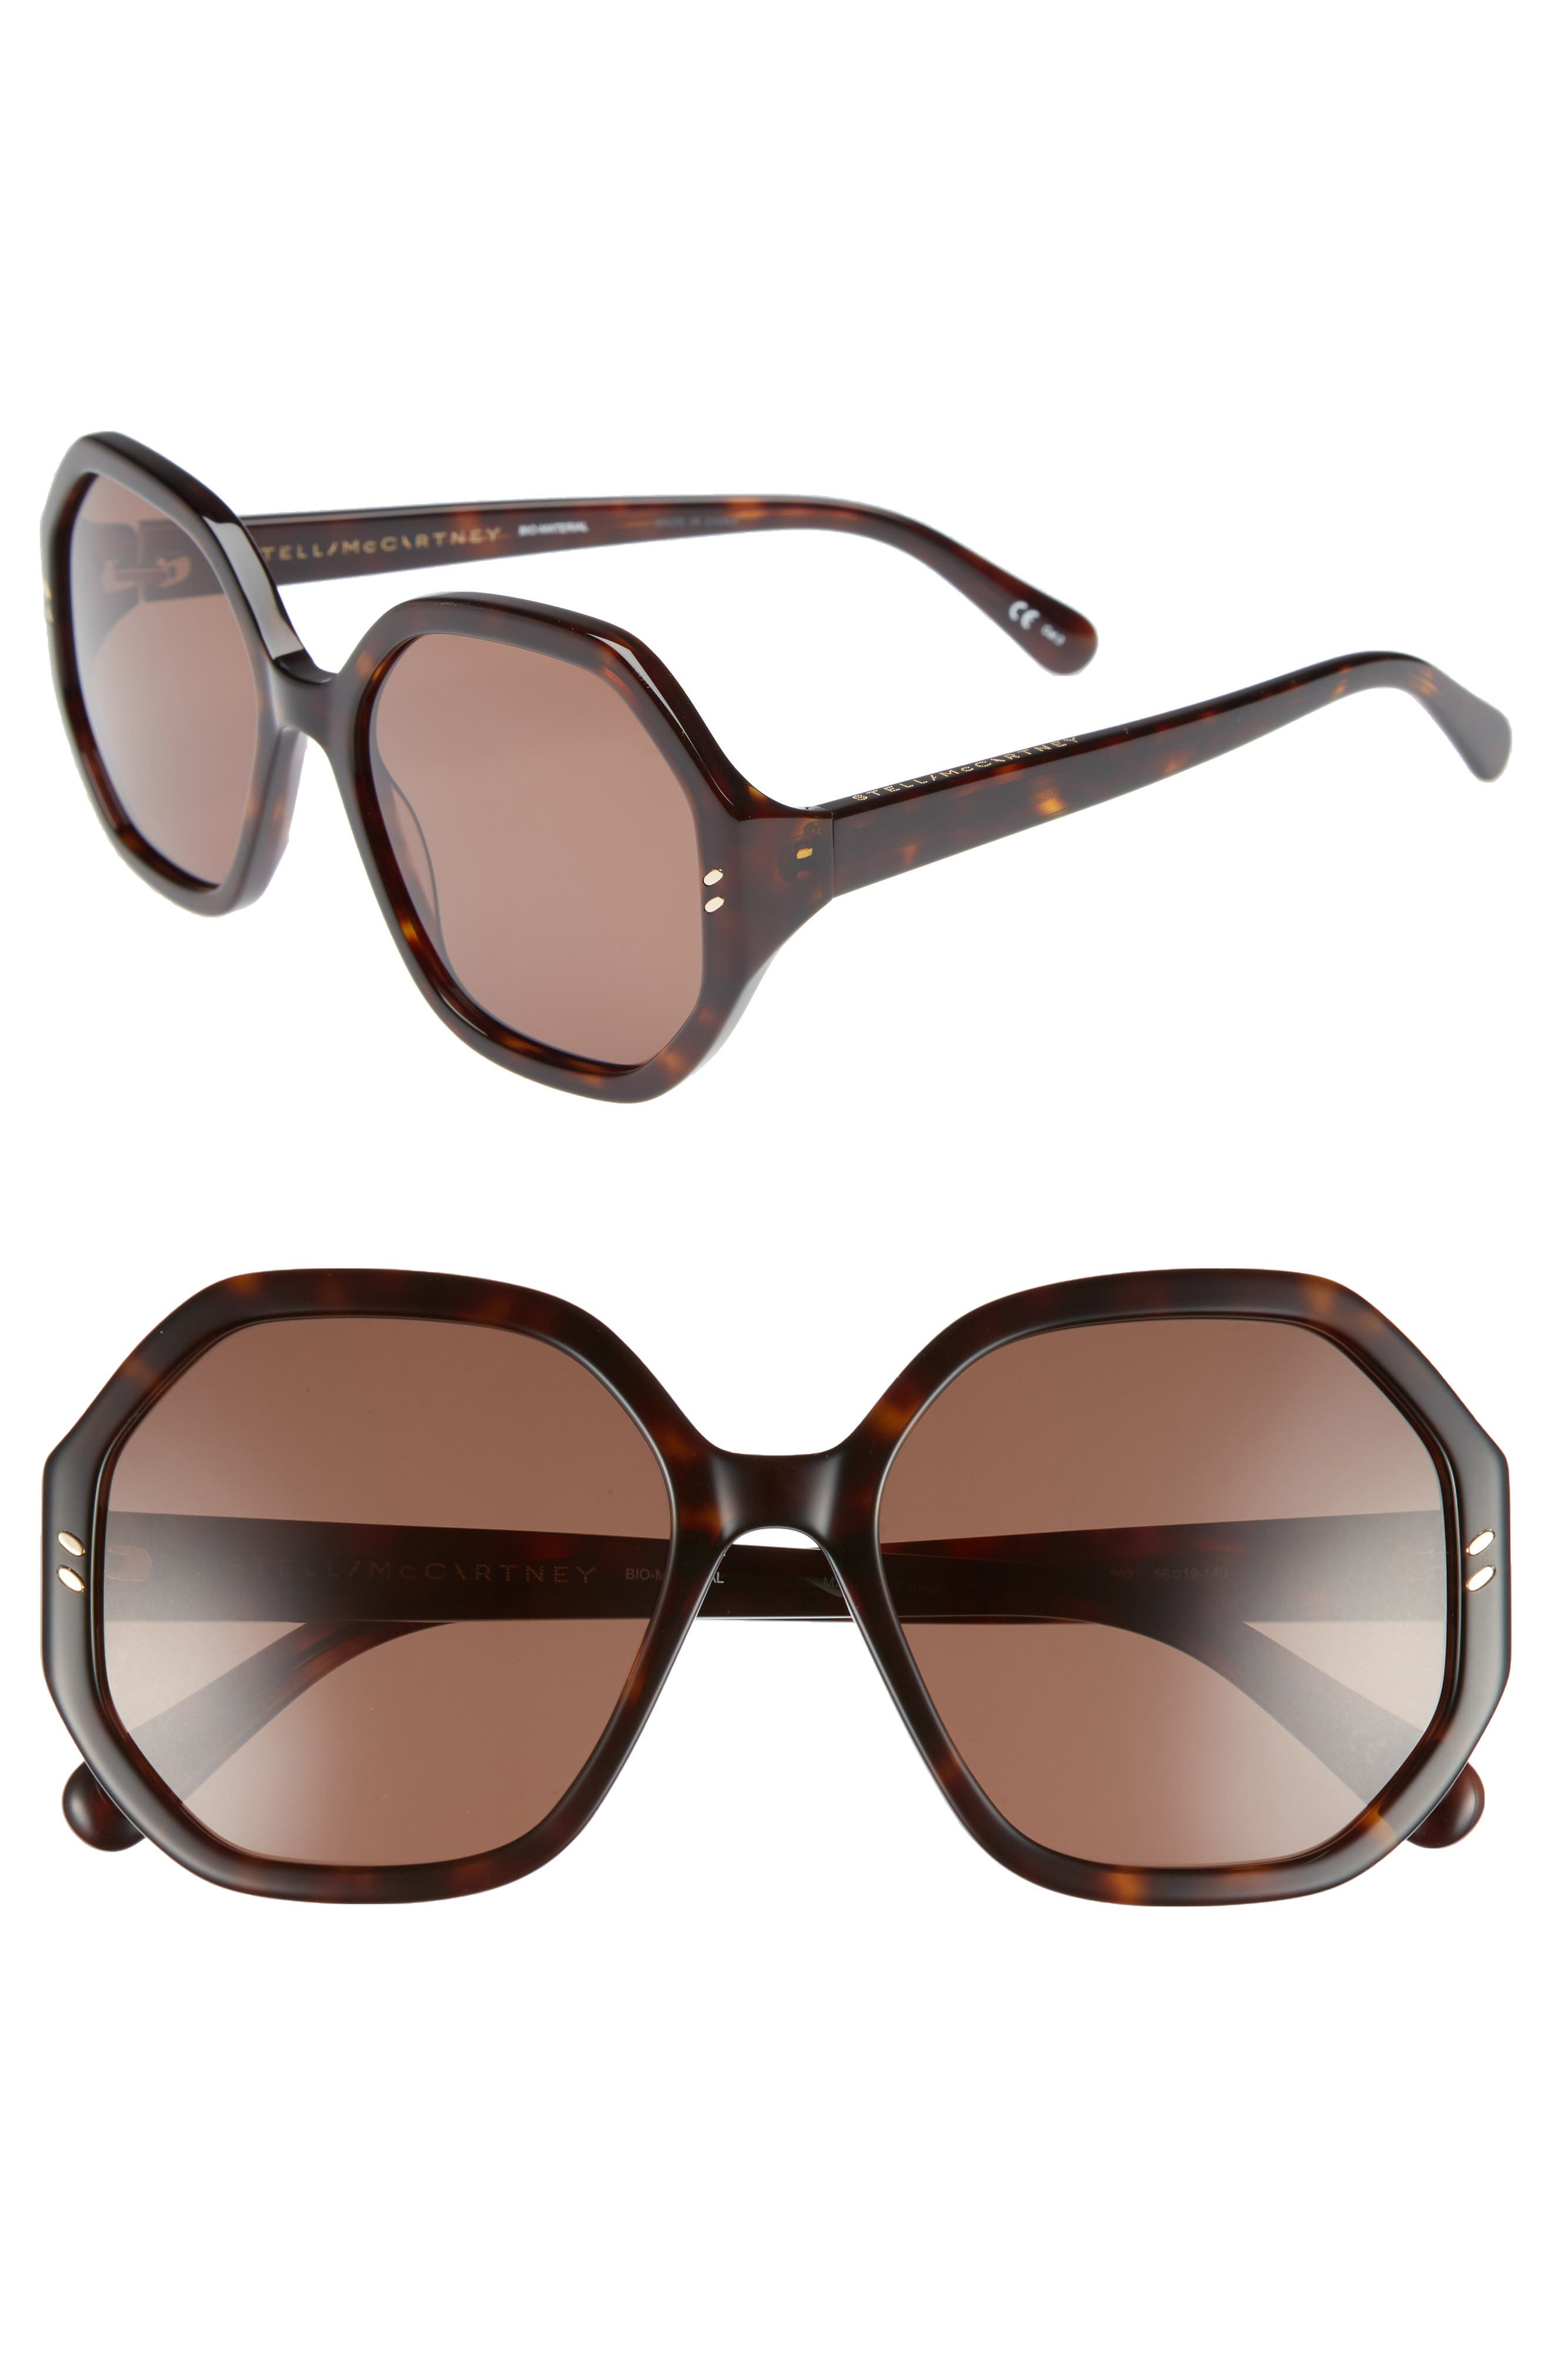 56mm Hexagonal Sunglasses,                             Main thumbnail 1, color,                             Dark Havana